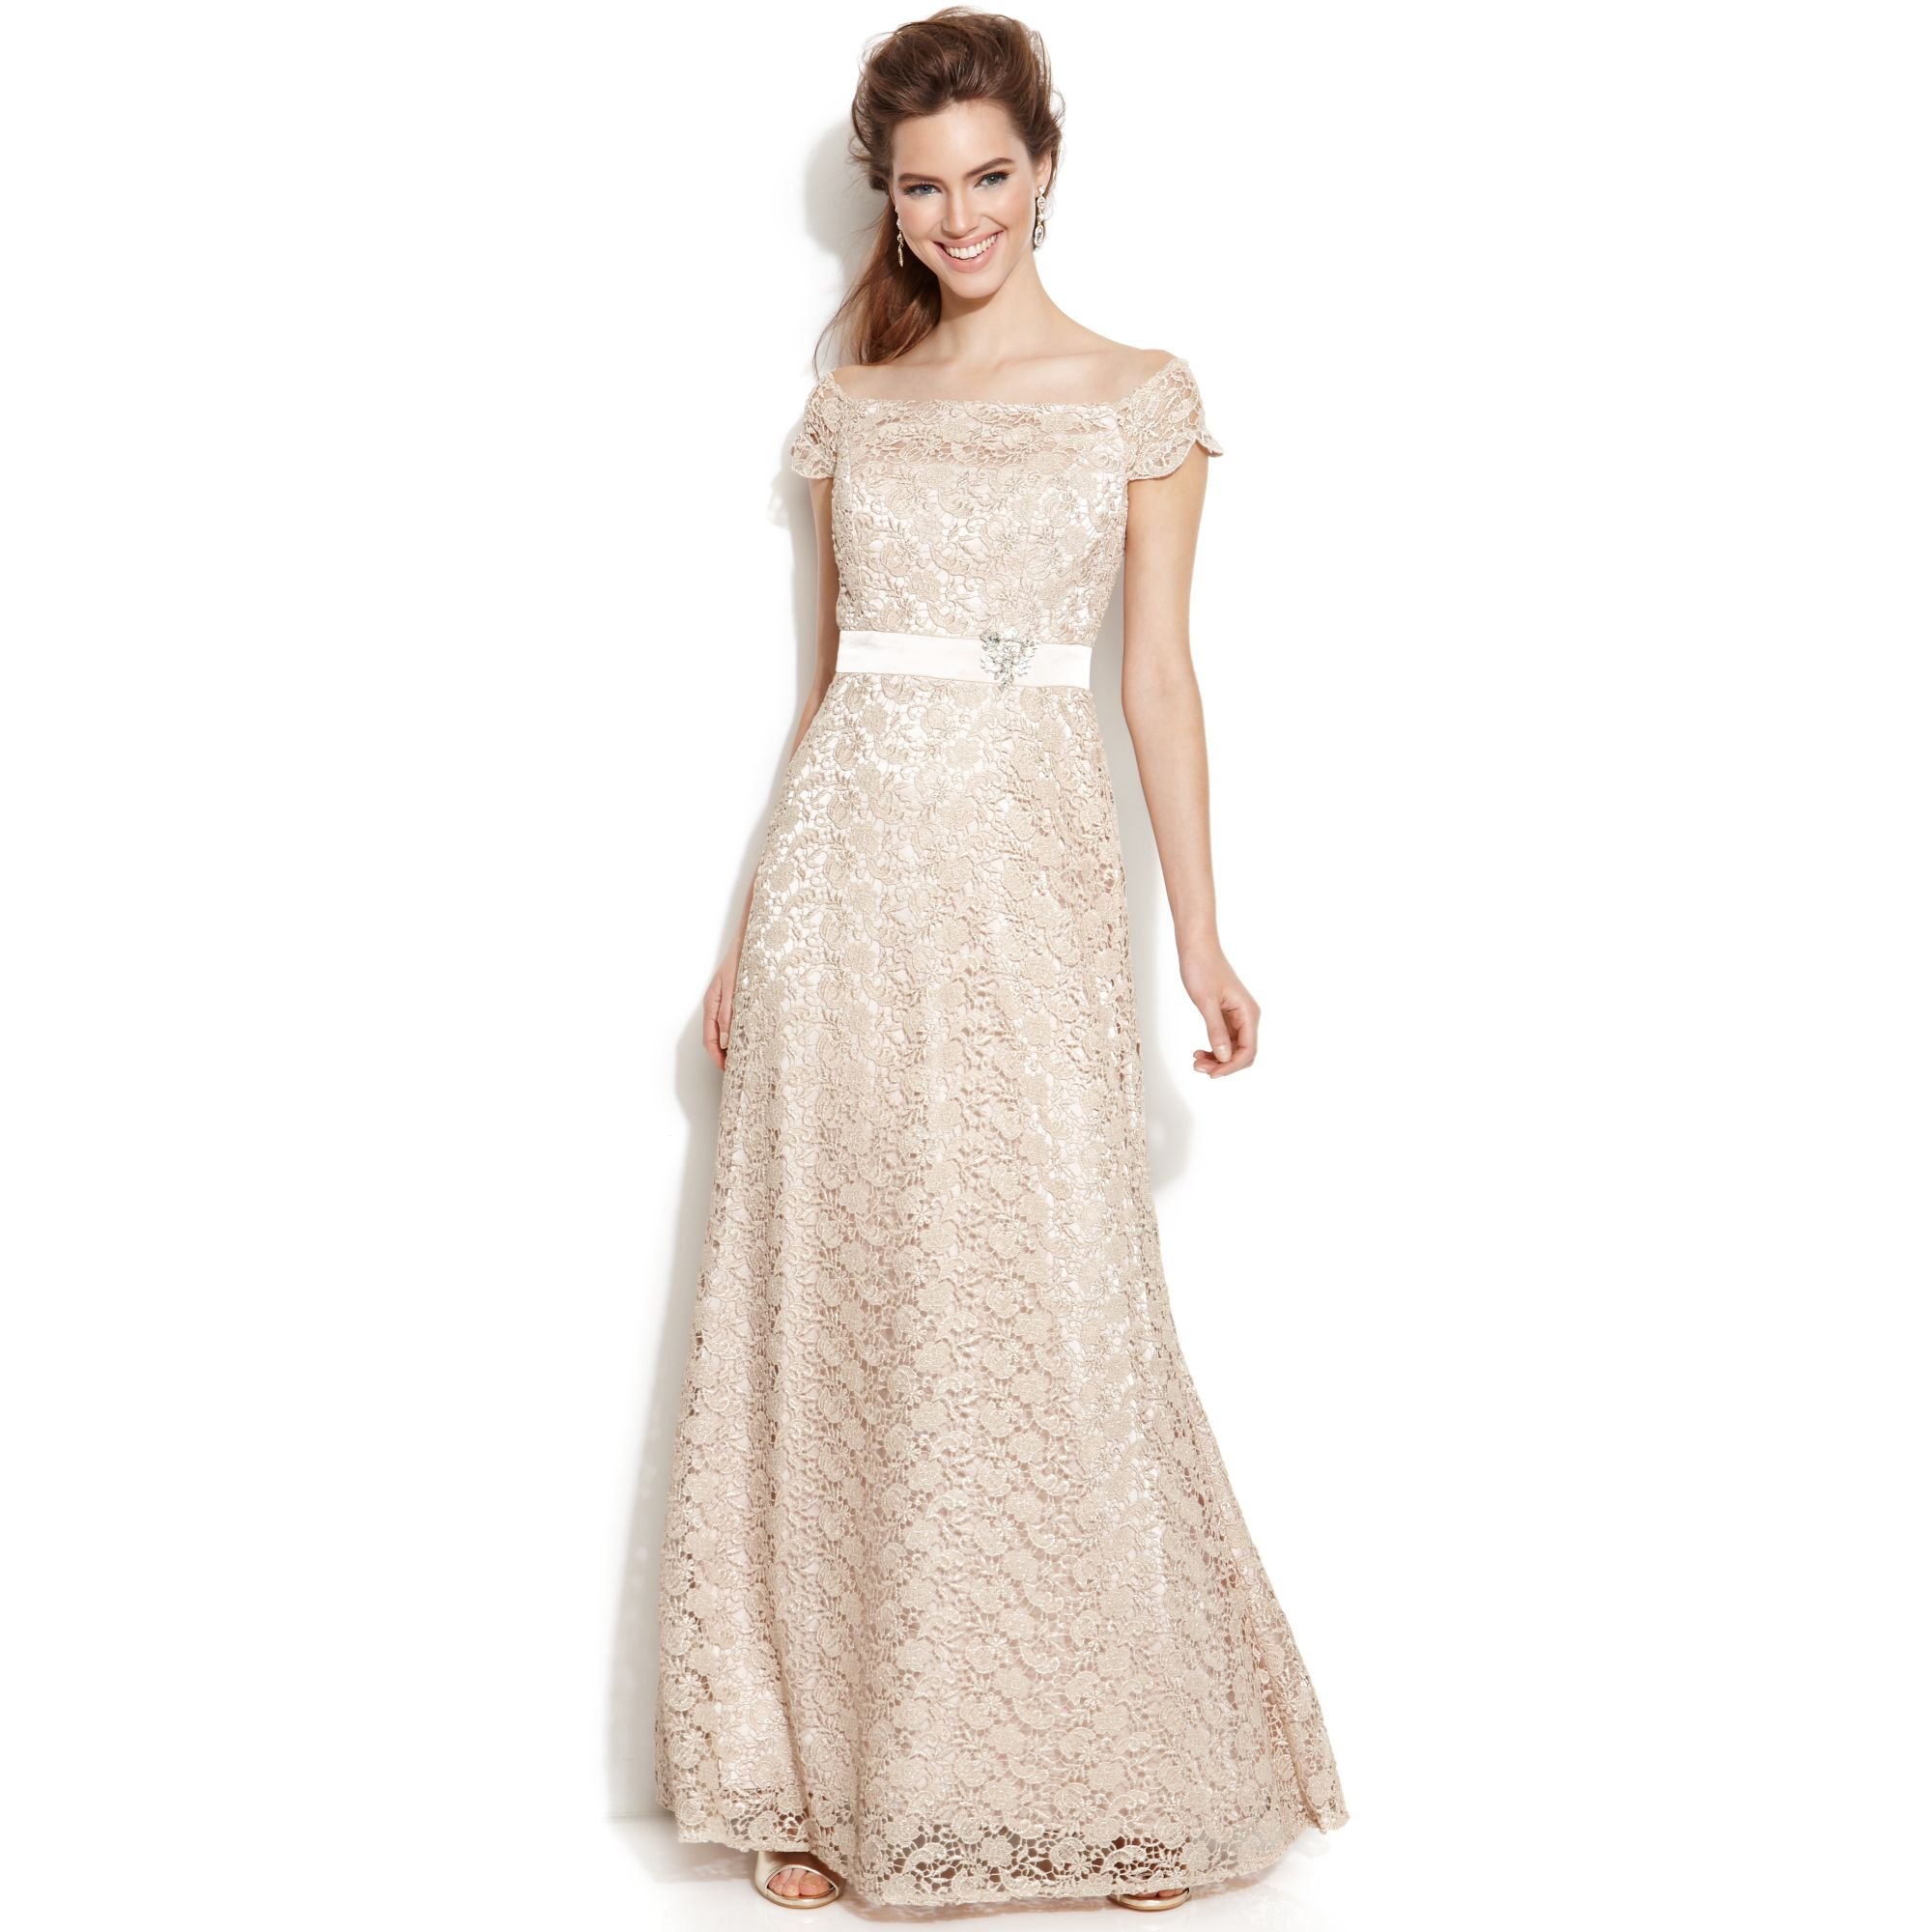 Lyst - Js Collections Capsleeve Glitter Lace Gown in Metallic